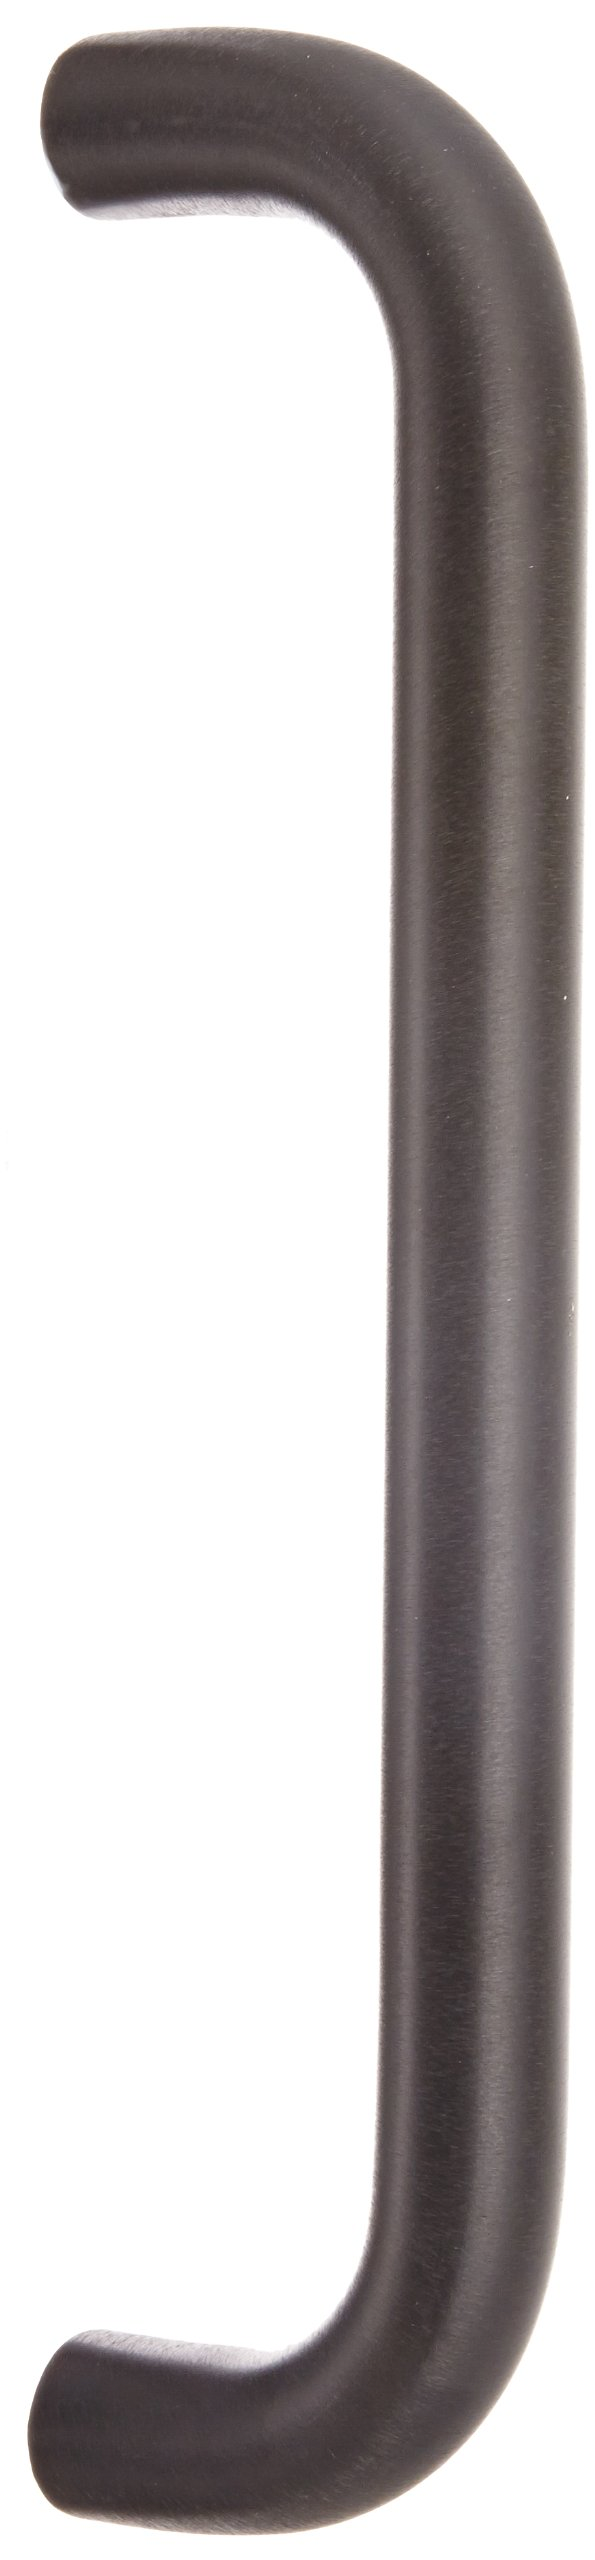 Rockwood 112BTB13.315 Aluminum Straight Solid Door Pull Set for 1-3/4'' Glass Door, 1'' Diameter x 12'' Center-to-Center, Type 13 Back to Back Mount, Black Anodized Finish